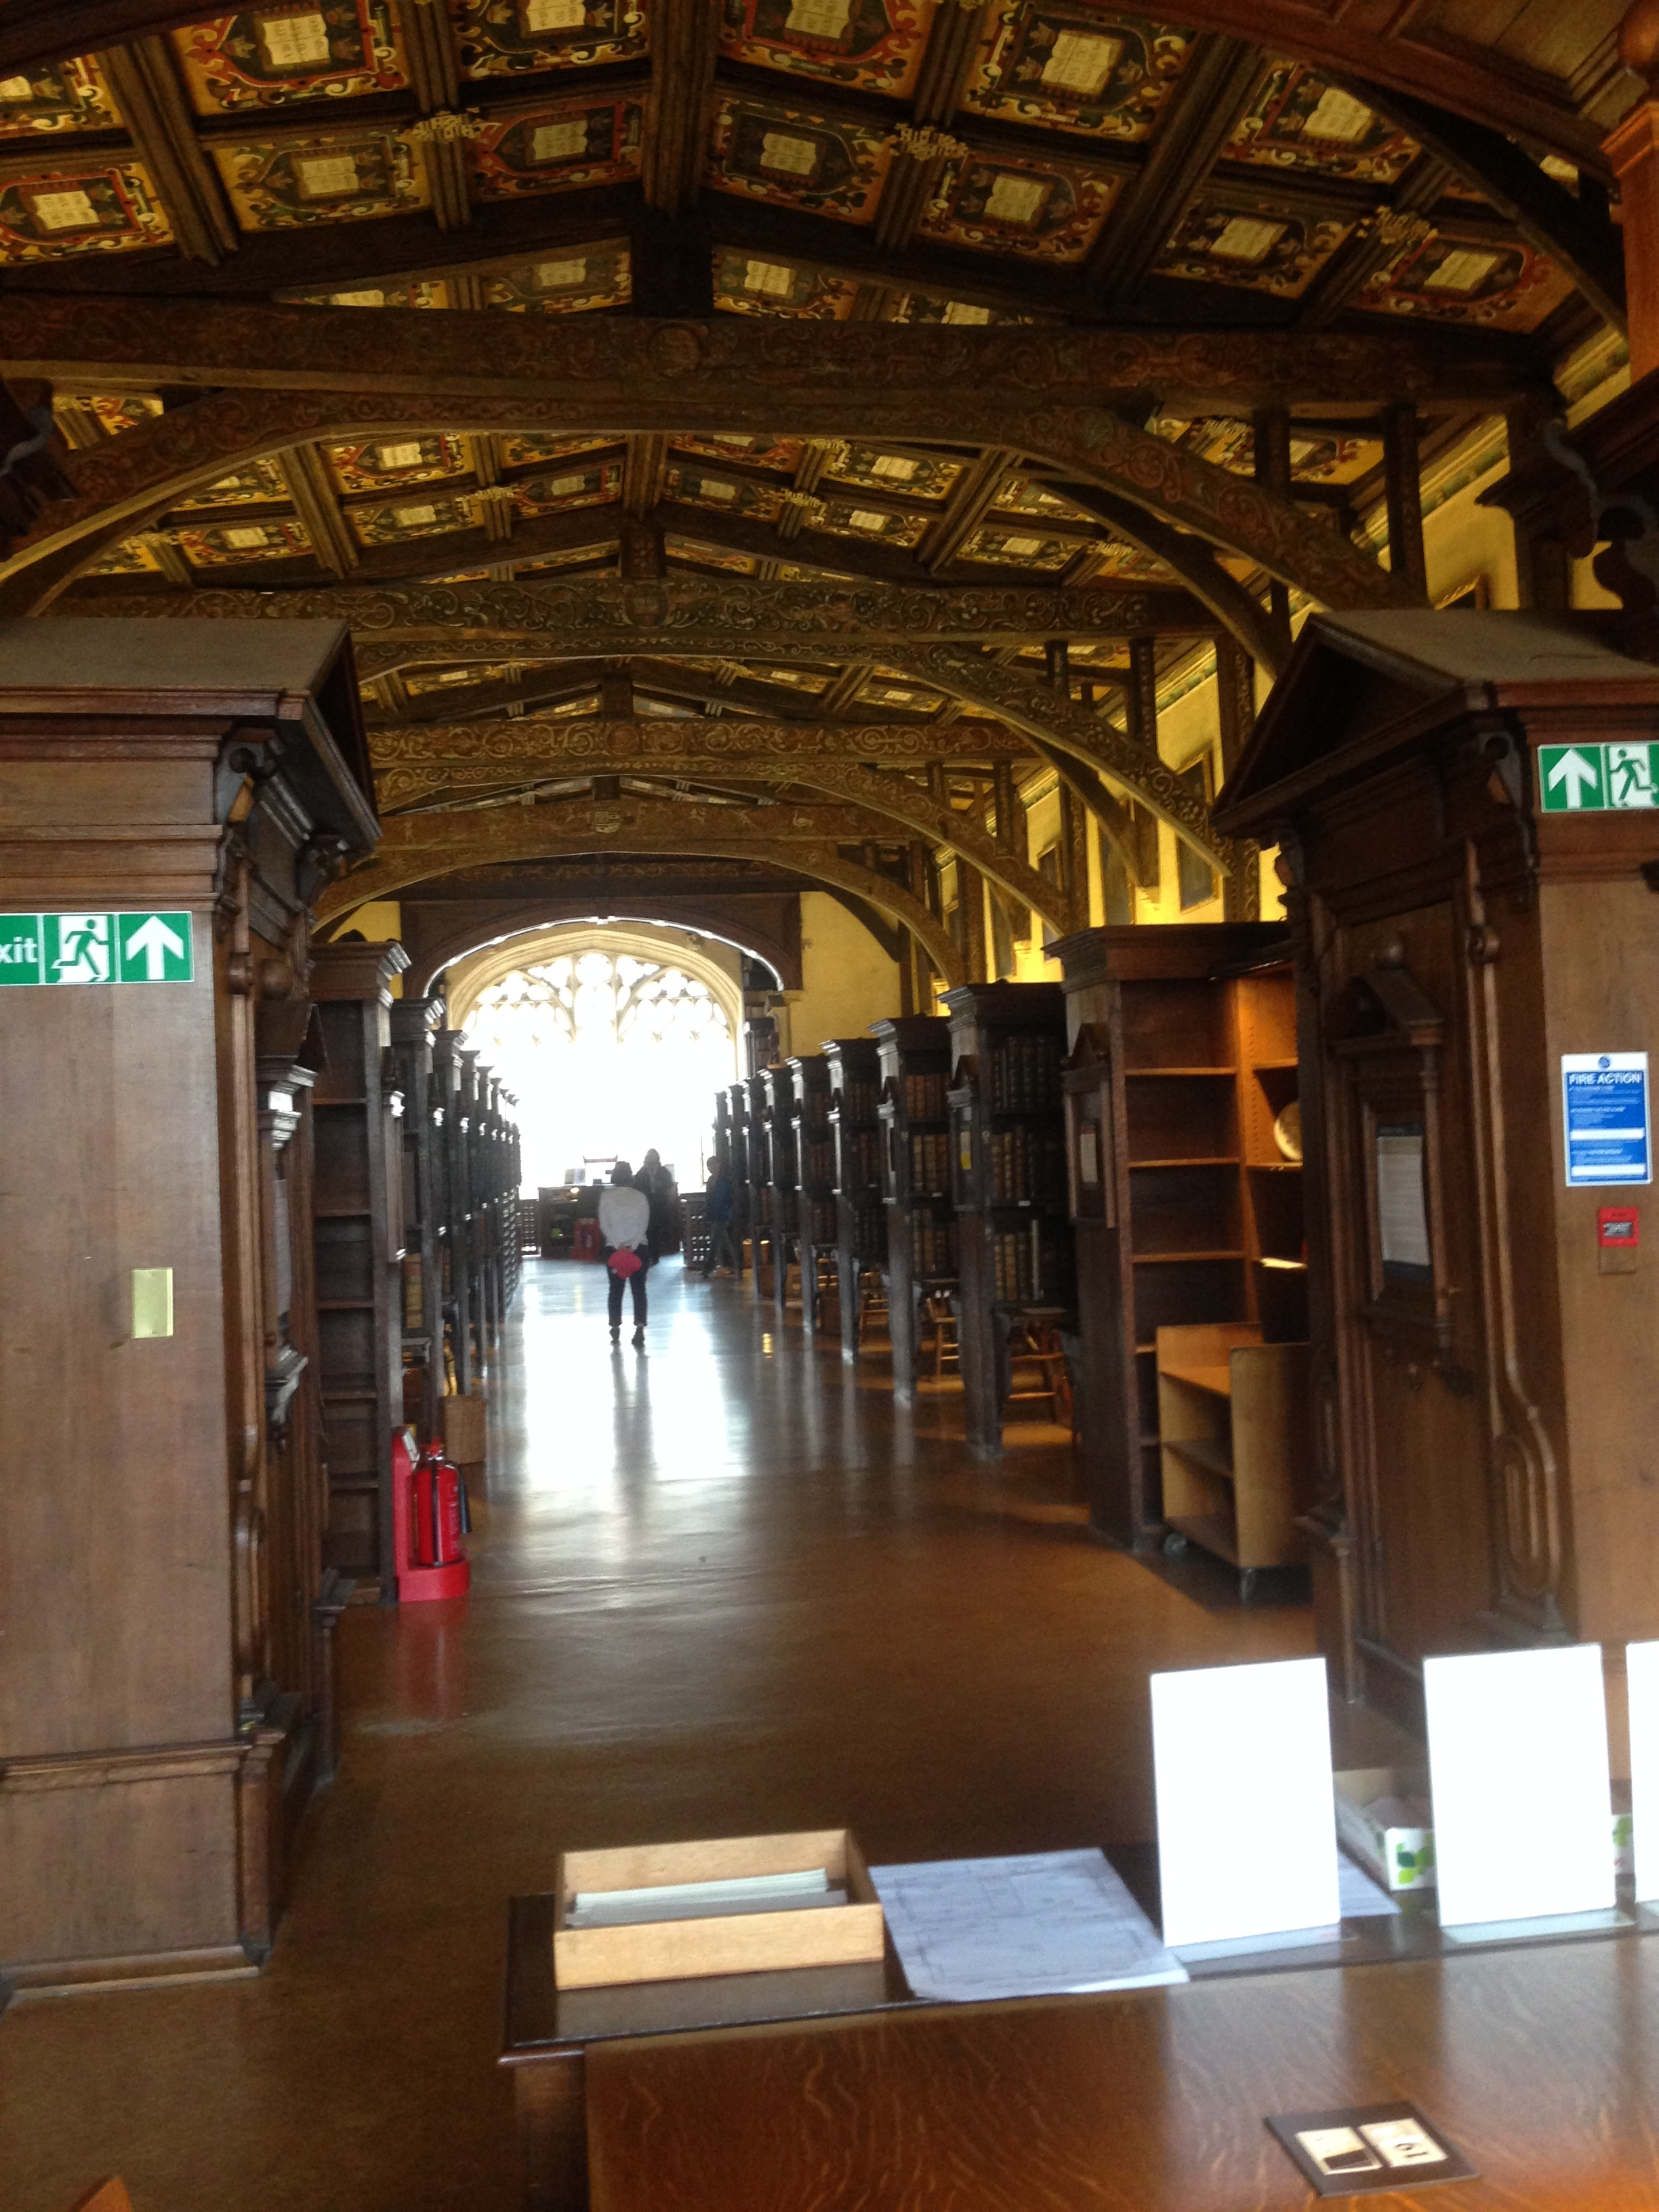 - Almost got tossed out of the library for this photo. This is the oldest reading room in the oldest Oxford library, and I hadn't noticed the No Photography sign. This space was built in the 15th century.  I wrote a bunch of my paper here as well.